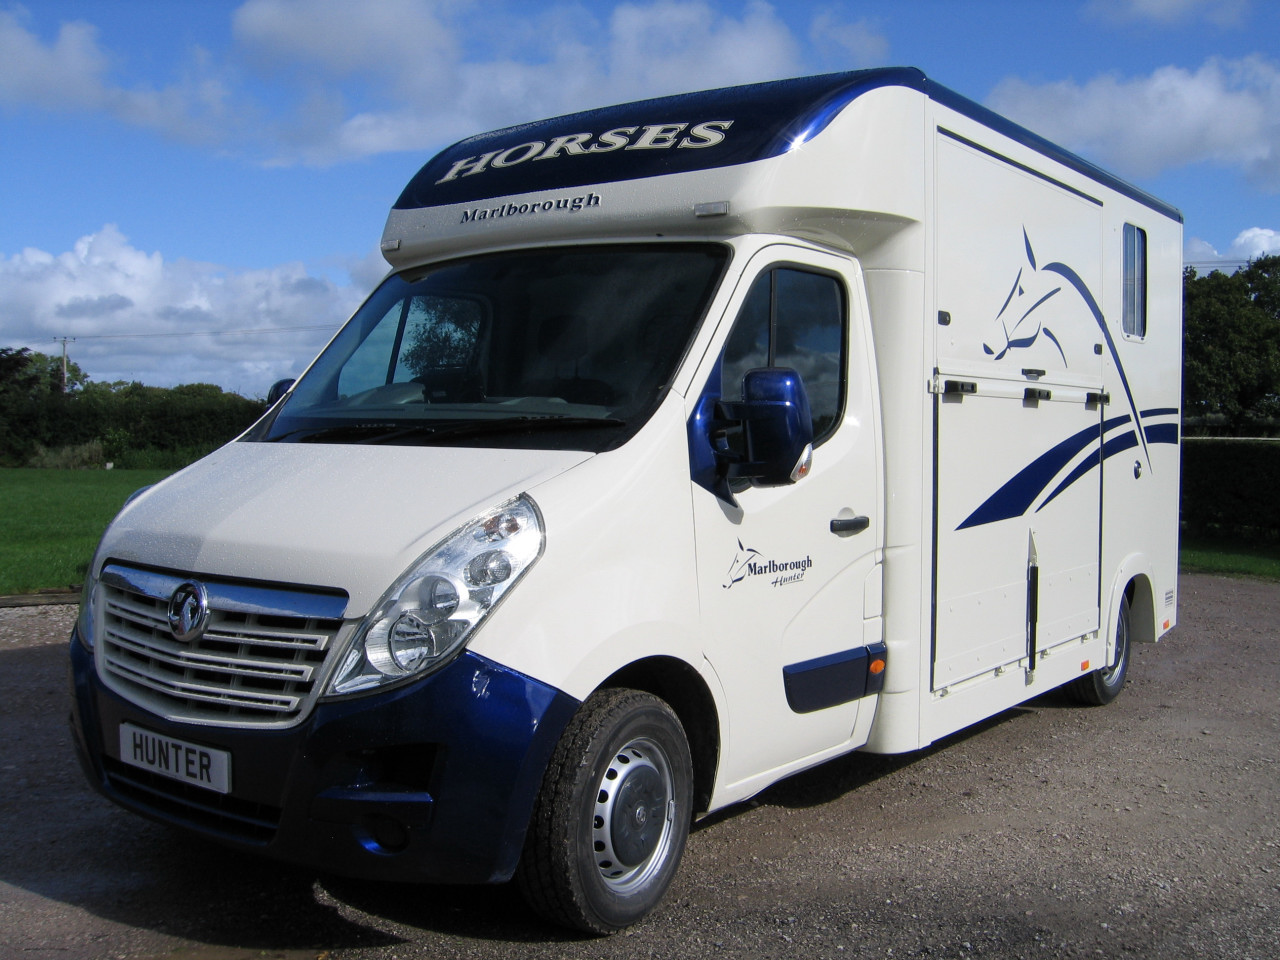 Horse Boxes for Sale in Leyland